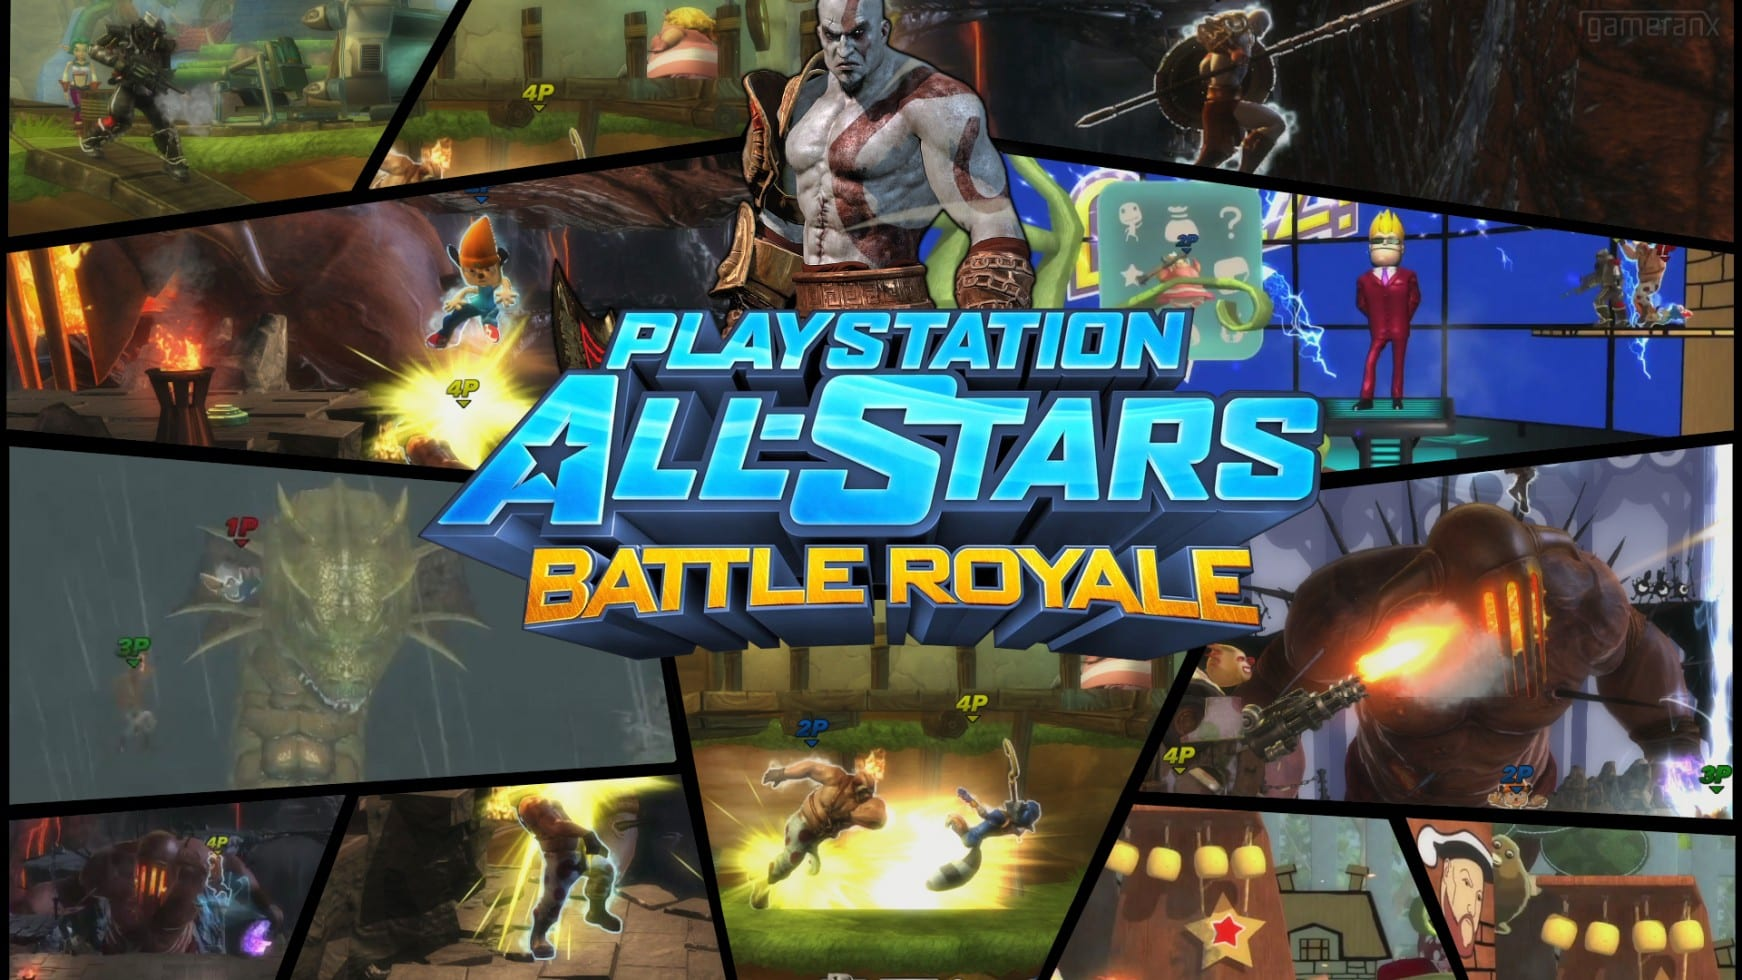 PlayStation All-Stars Coming This November